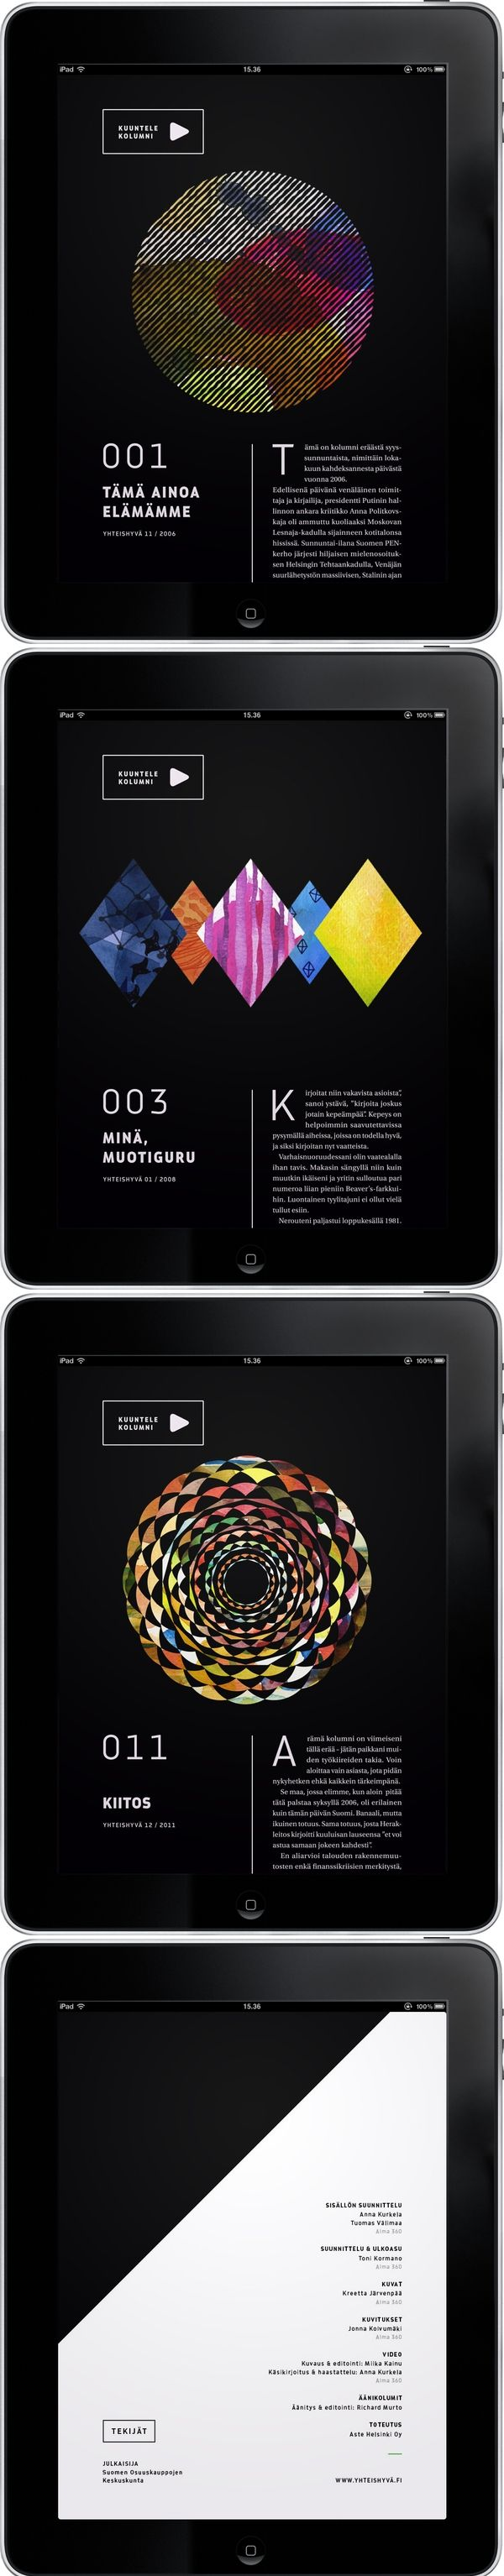 Kjell Westö iPad Publication. For more details visit http://mobilewebmds.com/mobile-apps/